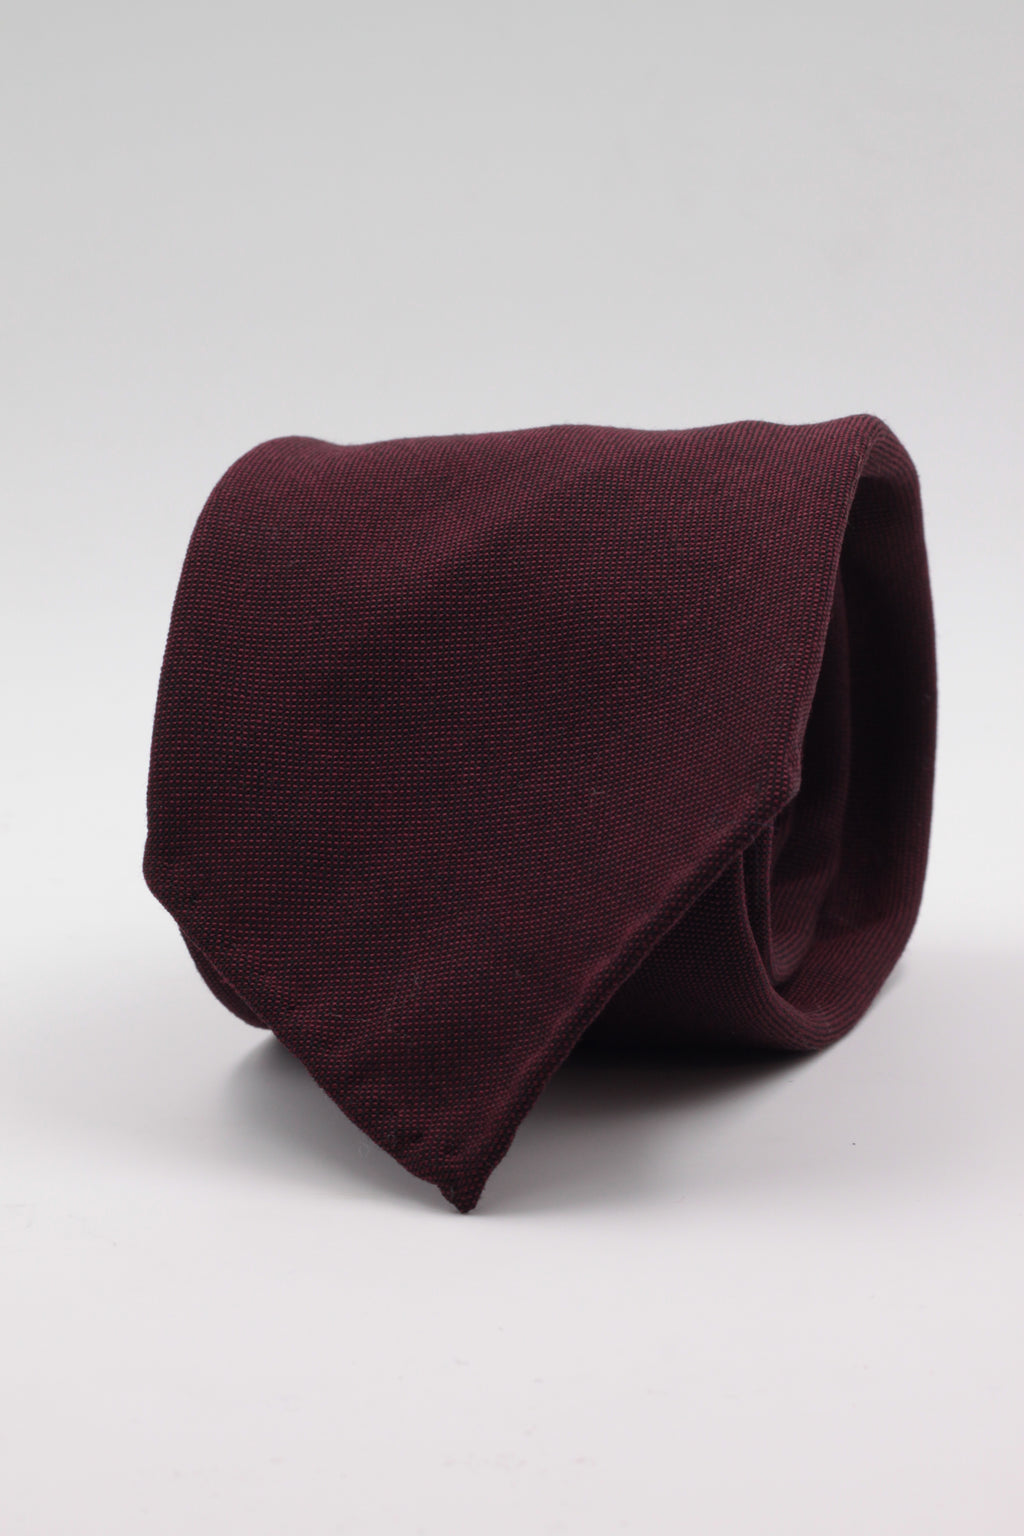 100% Super 140's Worsted Wool Gabardine 9 oz Unlined Hand rolled blades Burgundy plain tie Handmade in Rome, Italy 8 cm x 150 cm